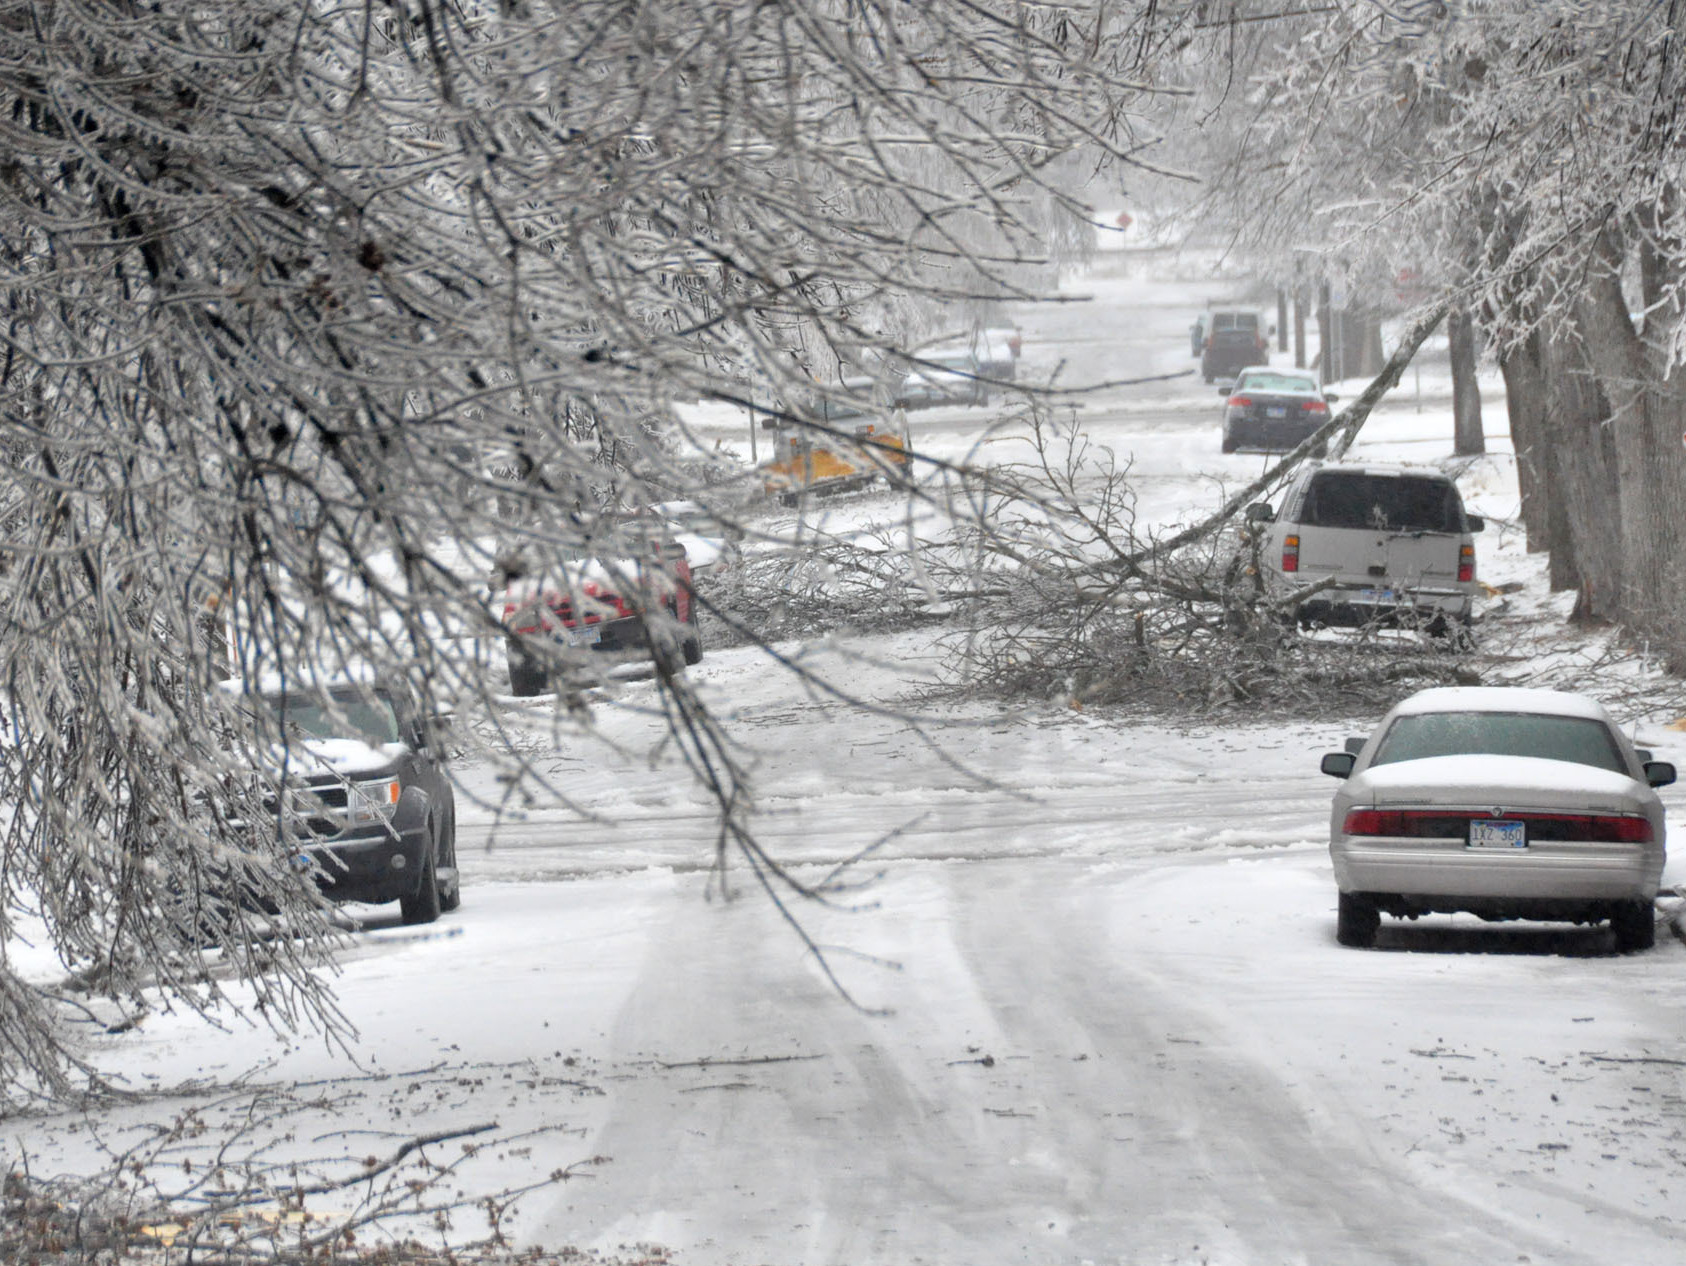 Wild Weather Warning: Tornadoes, Heavy Snows, High Winds